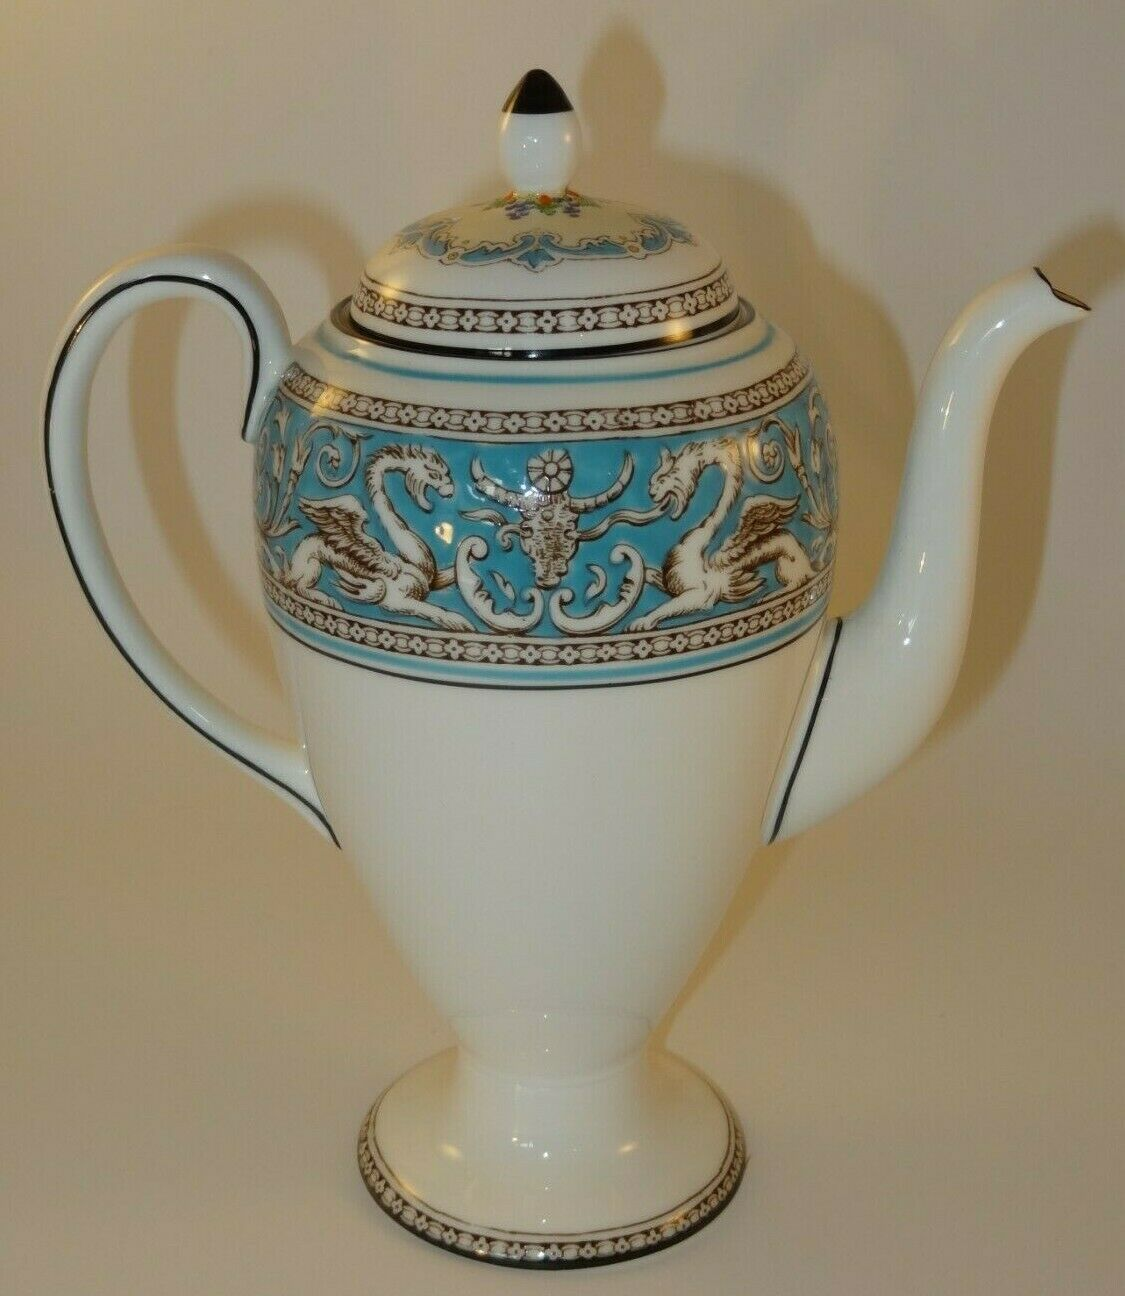 Image 3 - Wedgwood Florentine W2714 Turquoise Coffee Pot 1960s Excellent